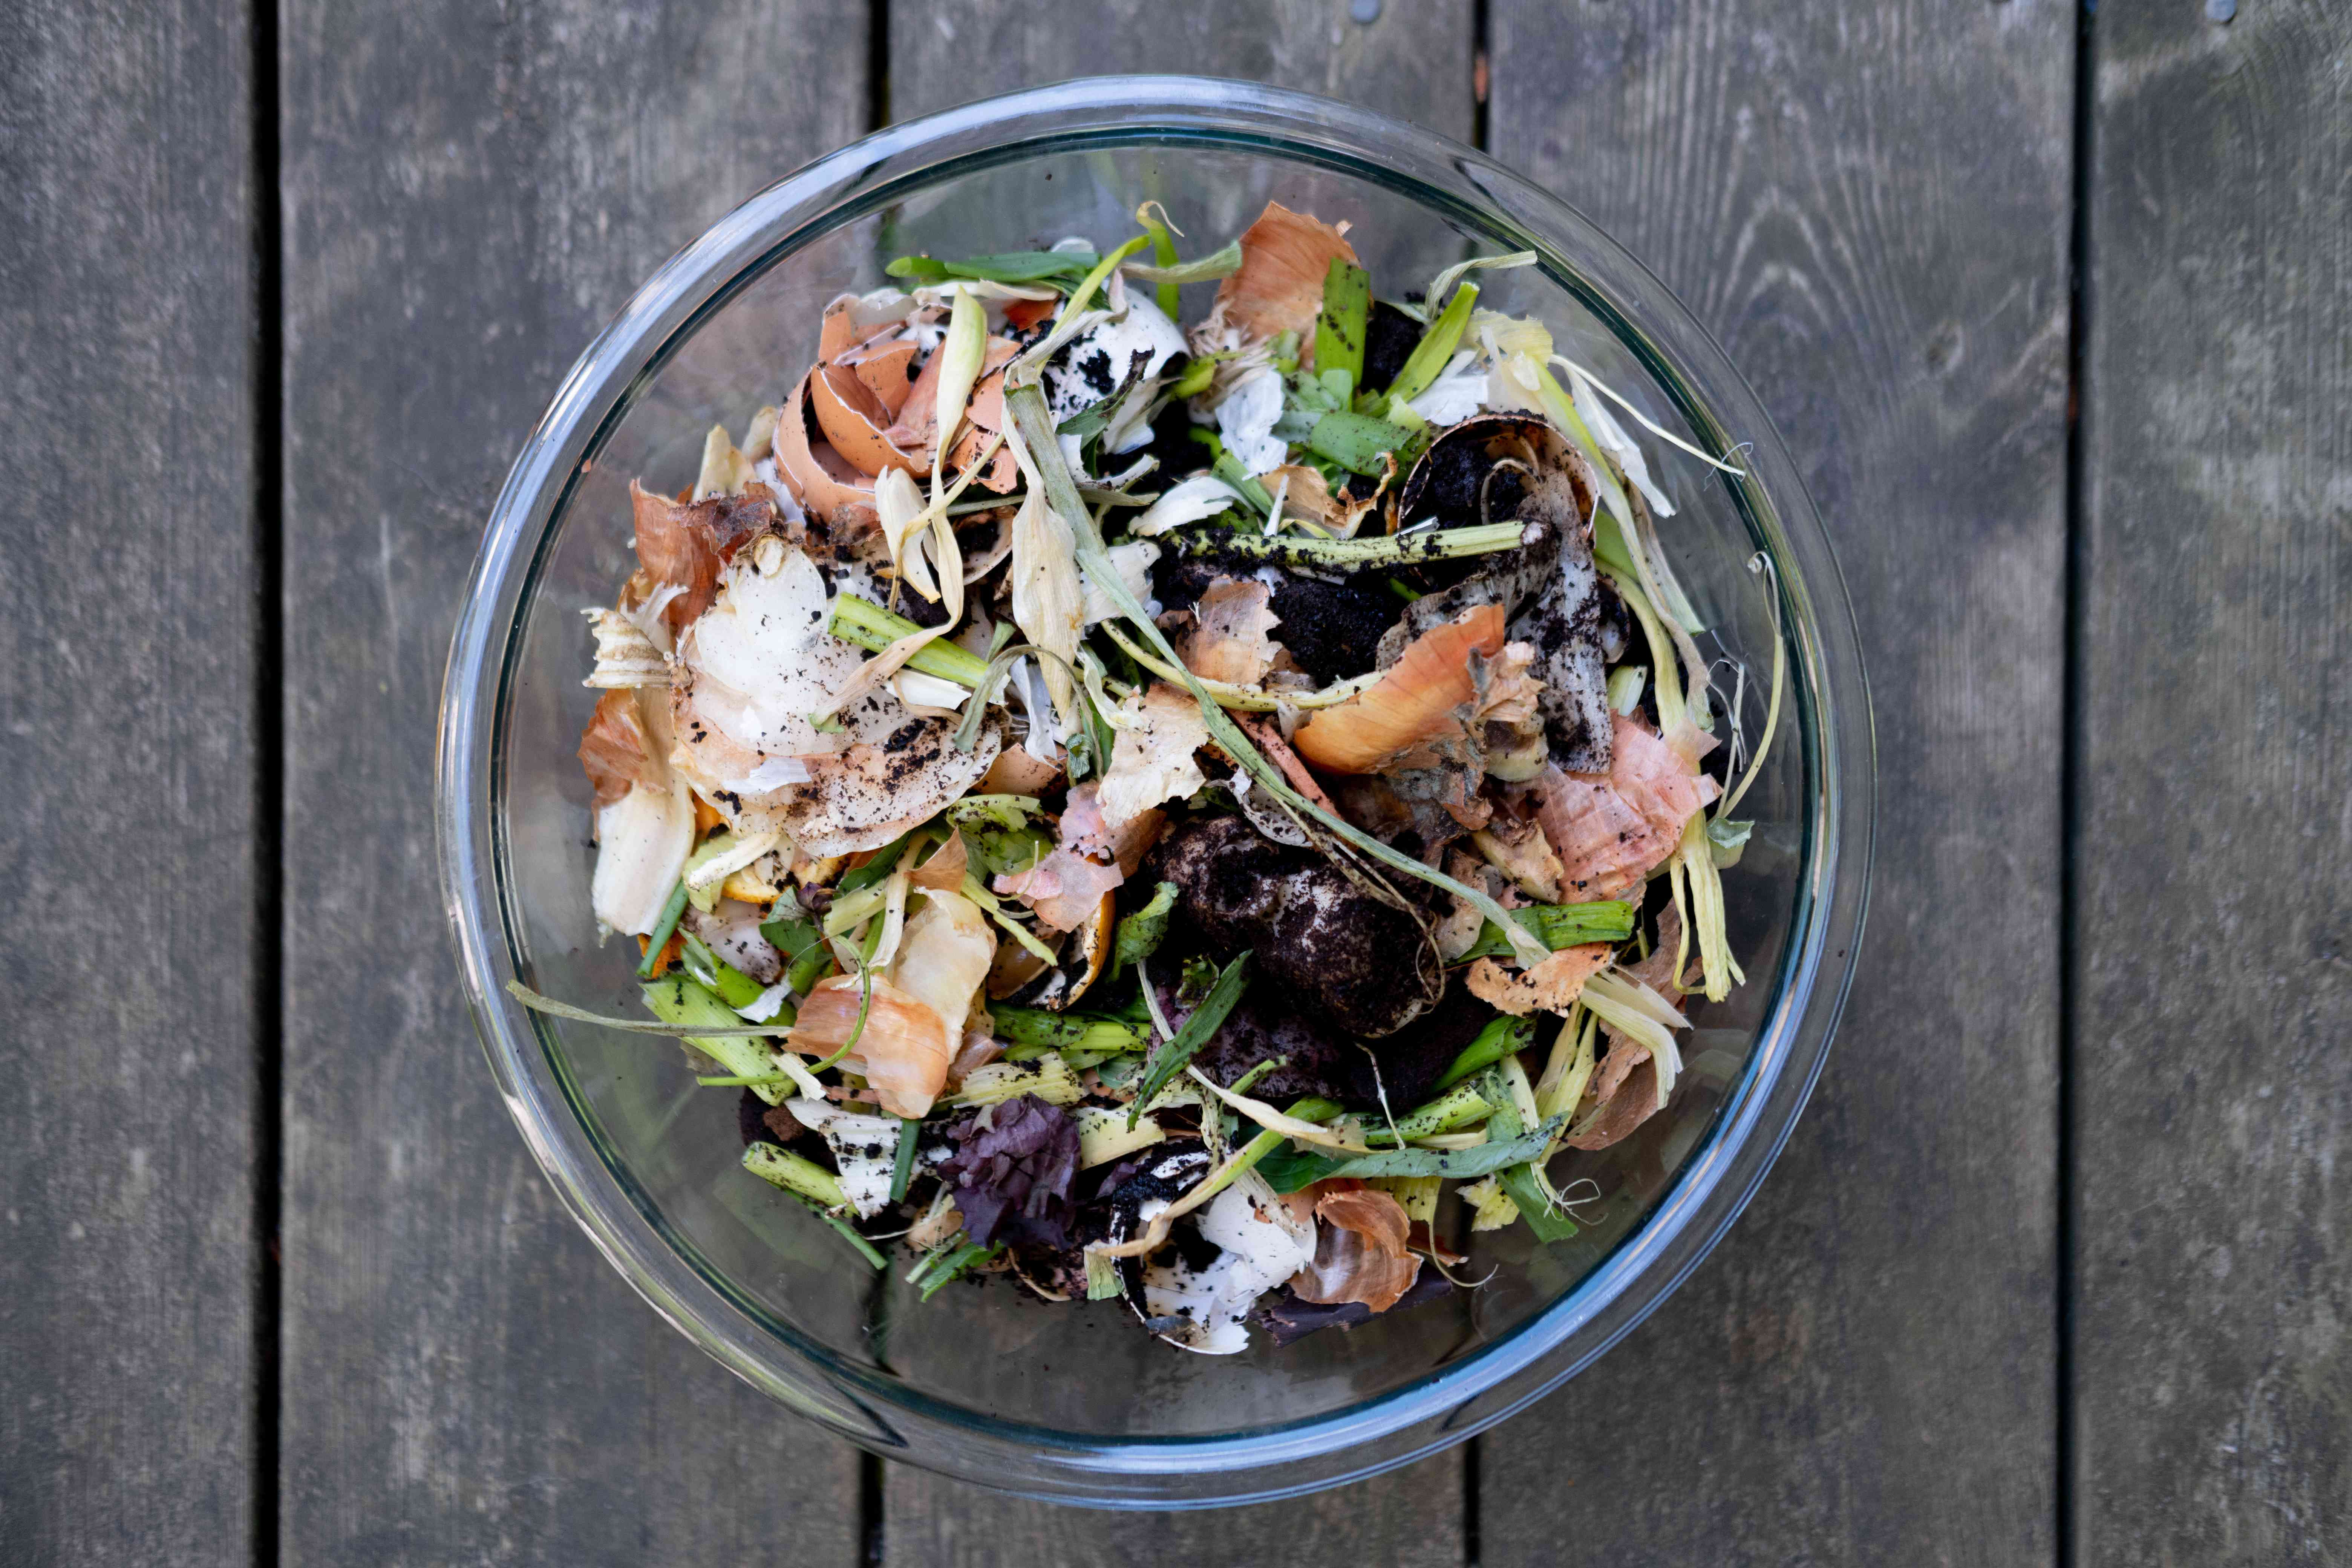 overhead view of clear glass bowl holding food scraps and egg shells